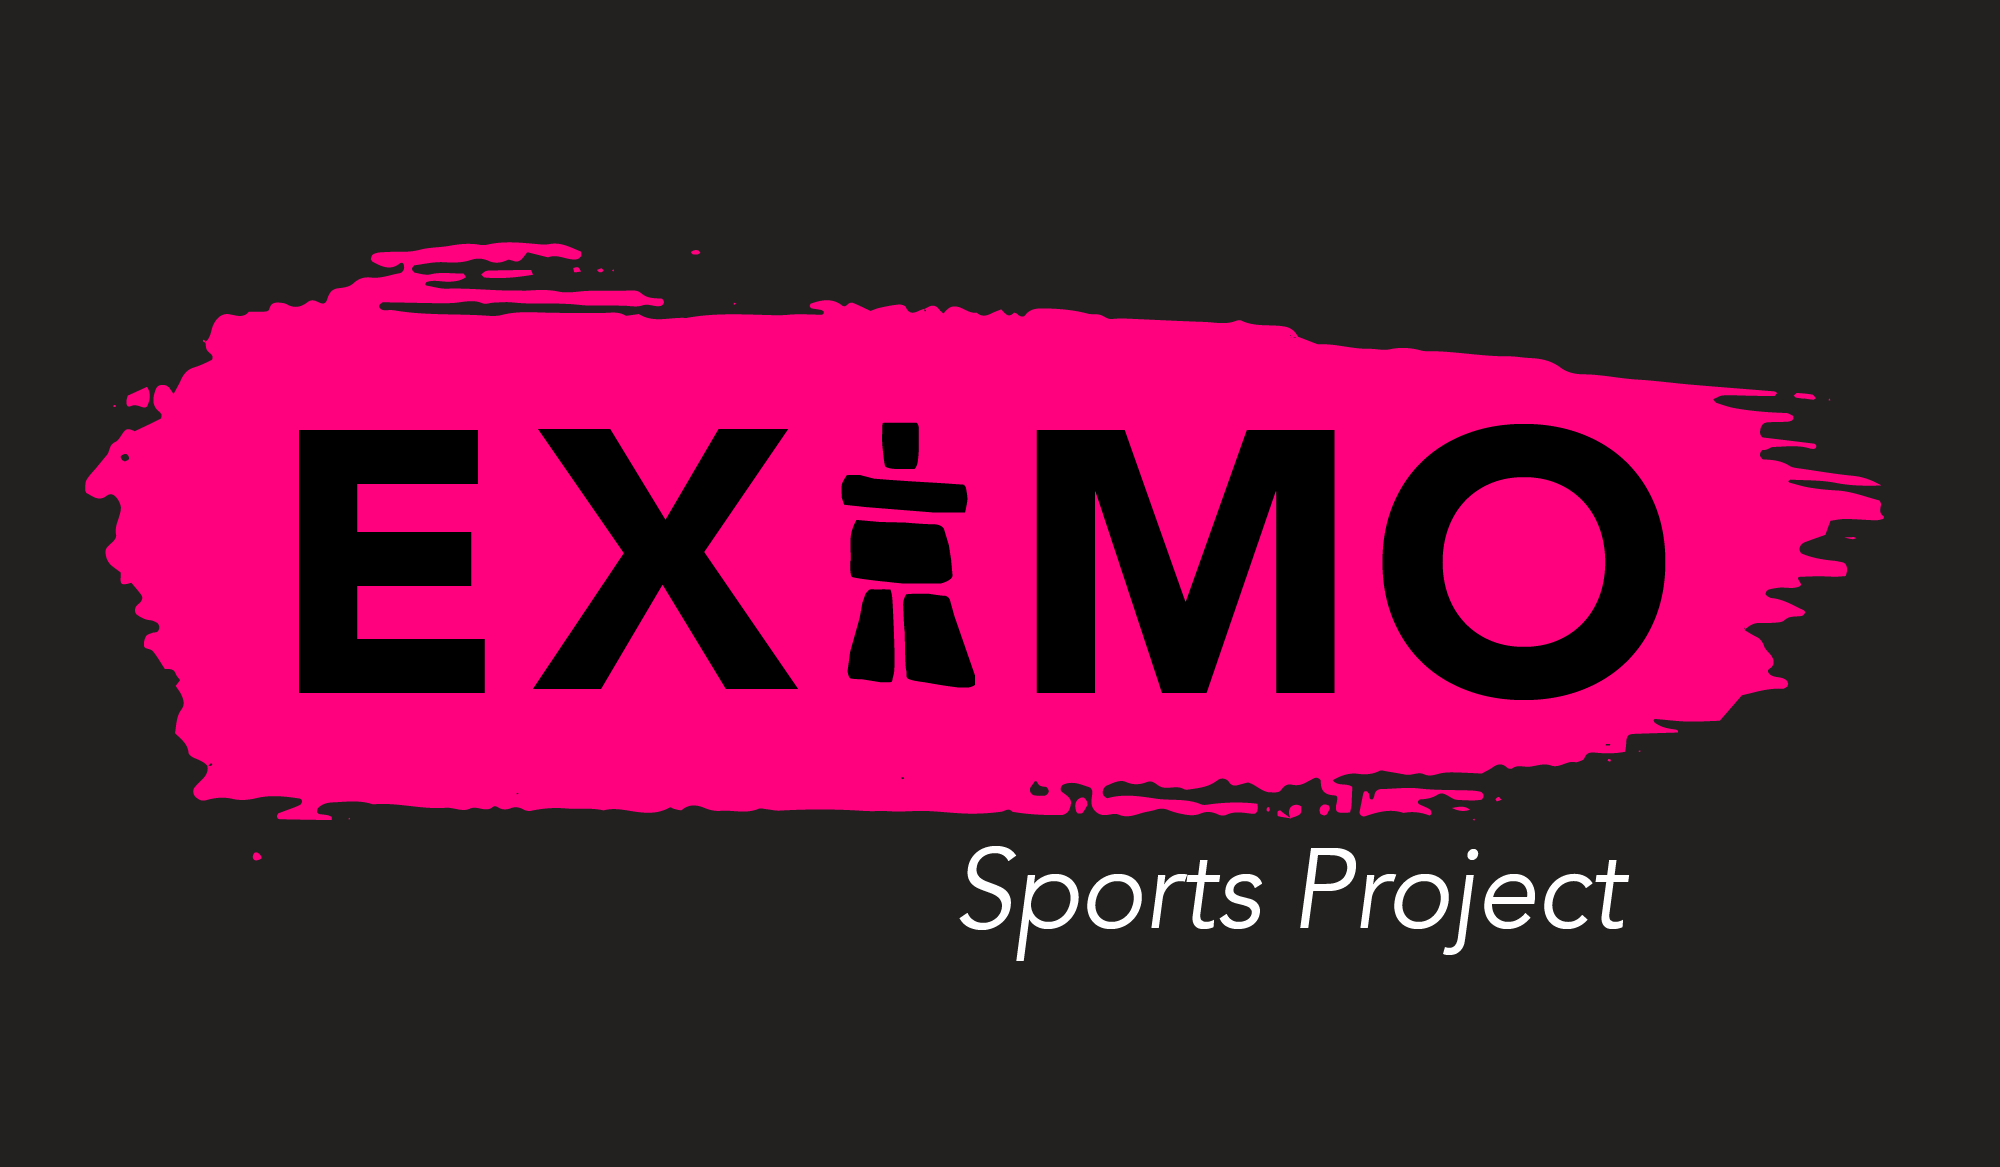 Eximo Sports Project